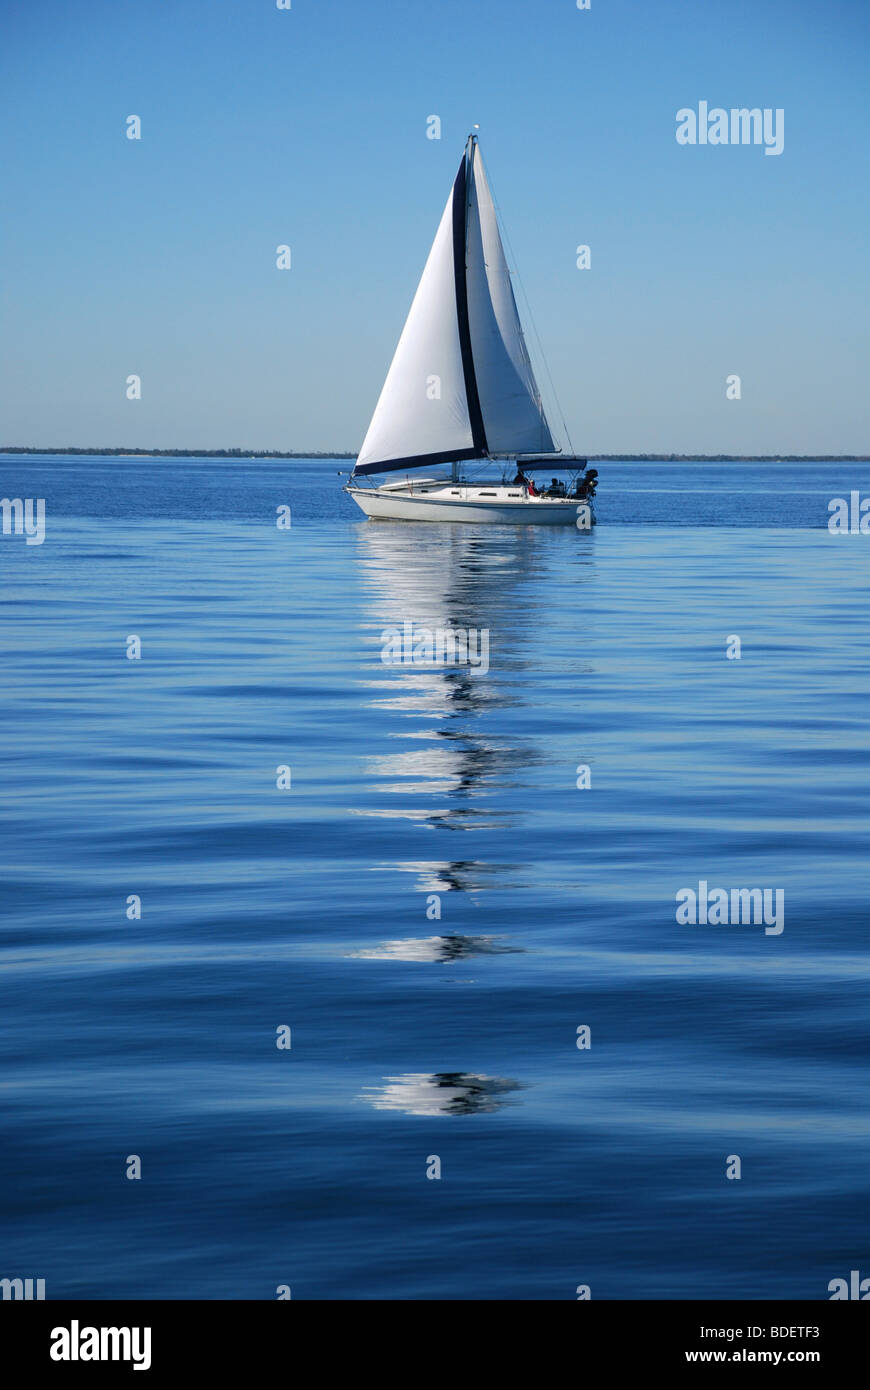 A sailing vessel's reflection on the water. Gulf of Mexico, Florida USA - Stock Image